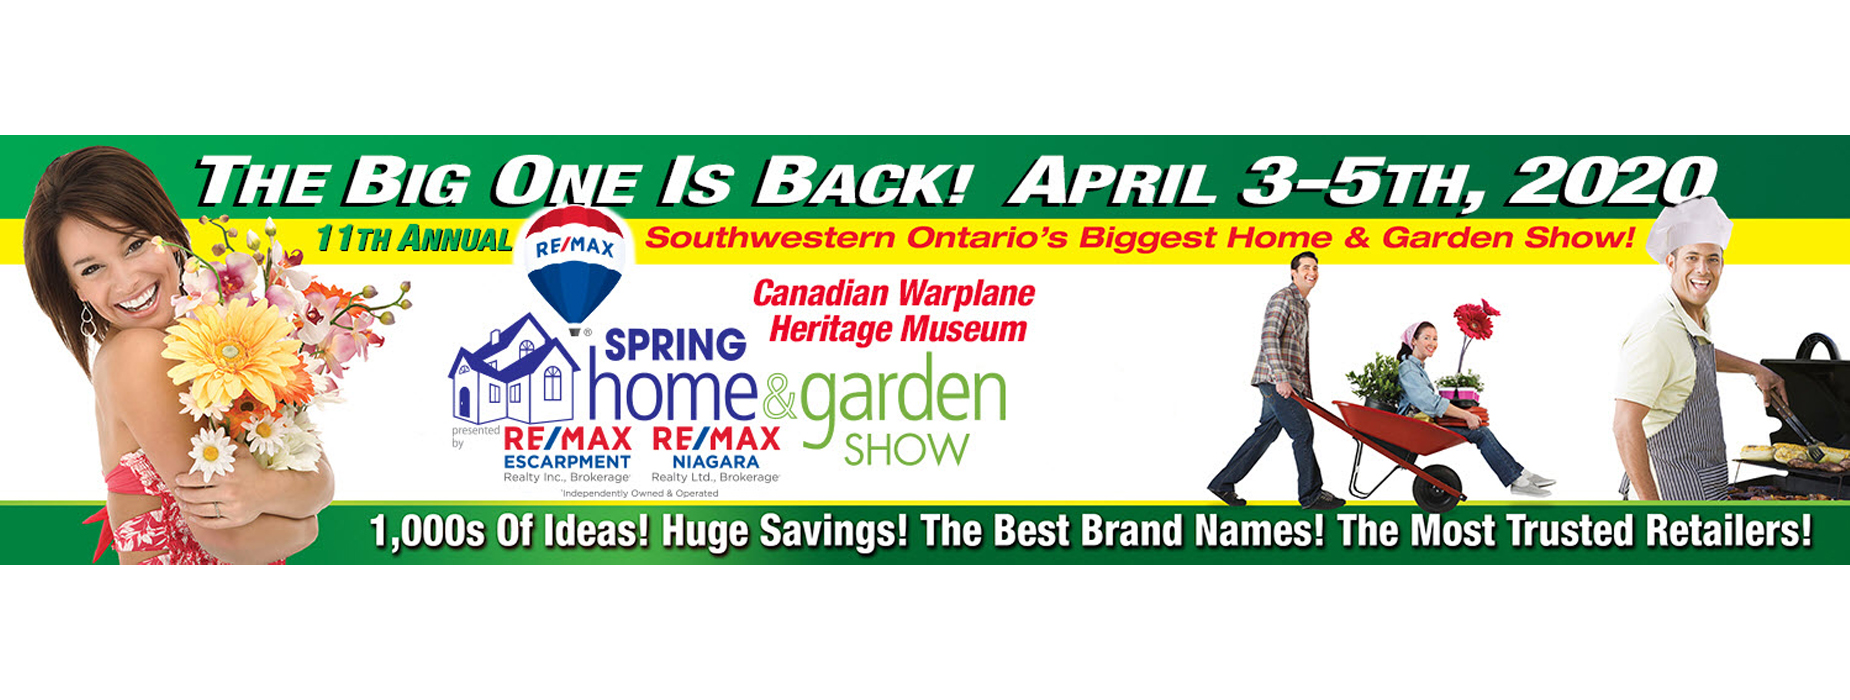 Banner Image for the Spring Home & Garden Show event